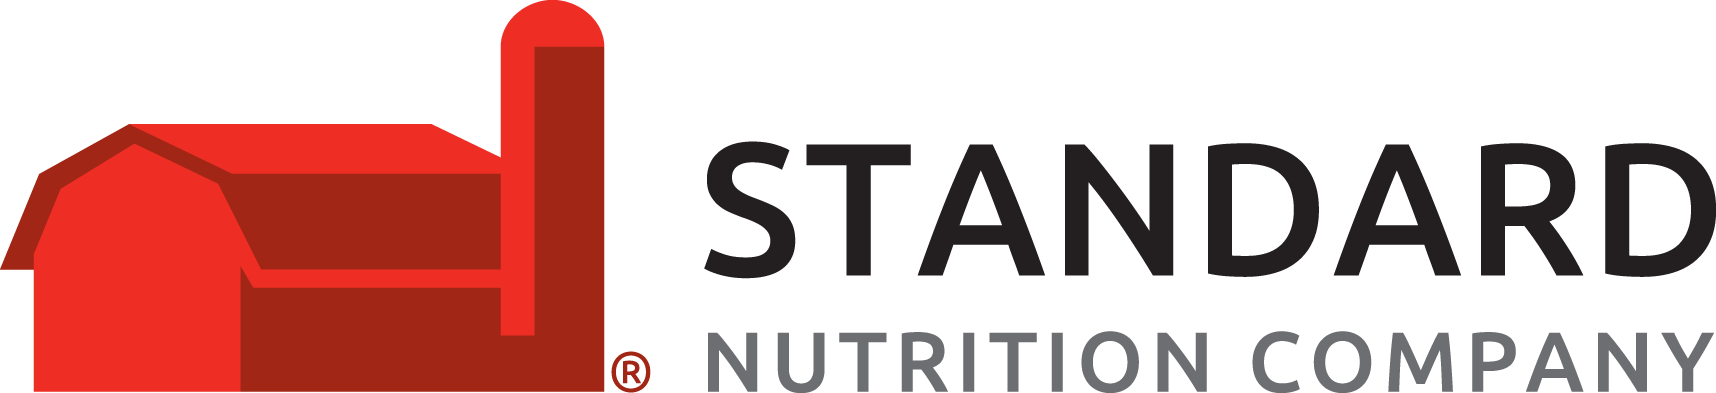 Standard Nutrition Company